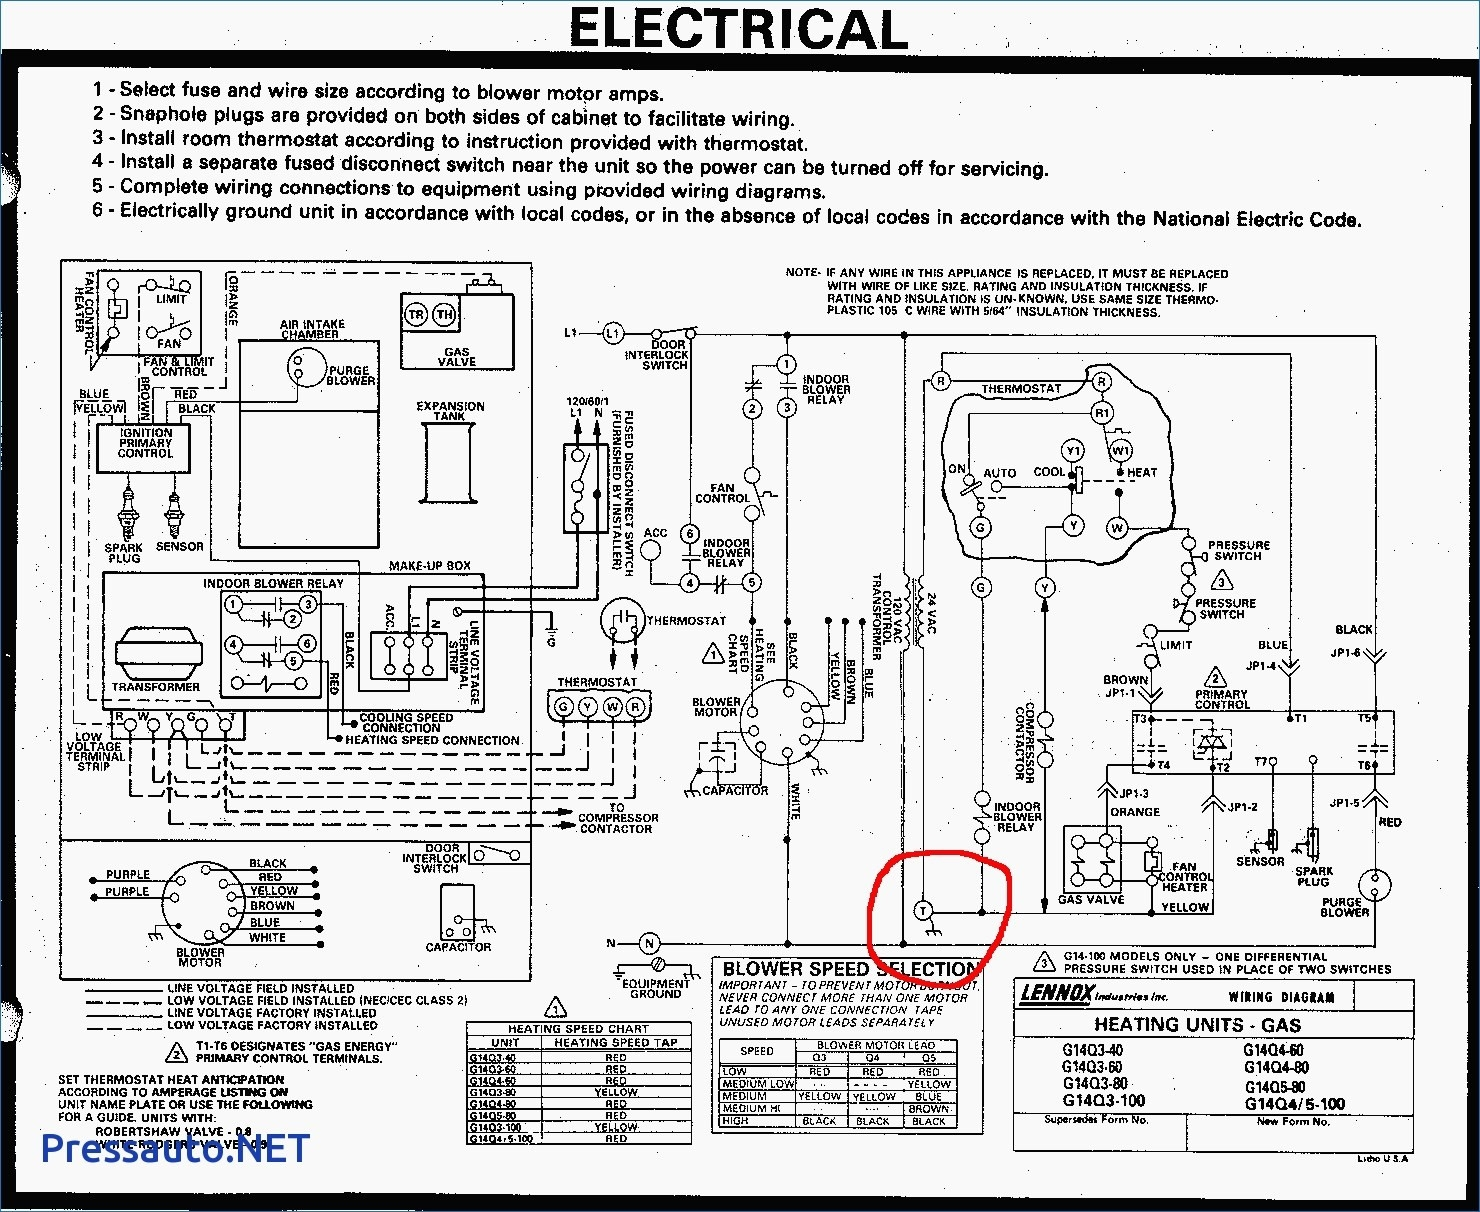 rheem rhllhm3617ja wiring diagram Collection-rheem wiring diagram wiring diagrams rh boltsoft net ruud wiring diagram ugdg 075auer Thermostat Wiring 7-l